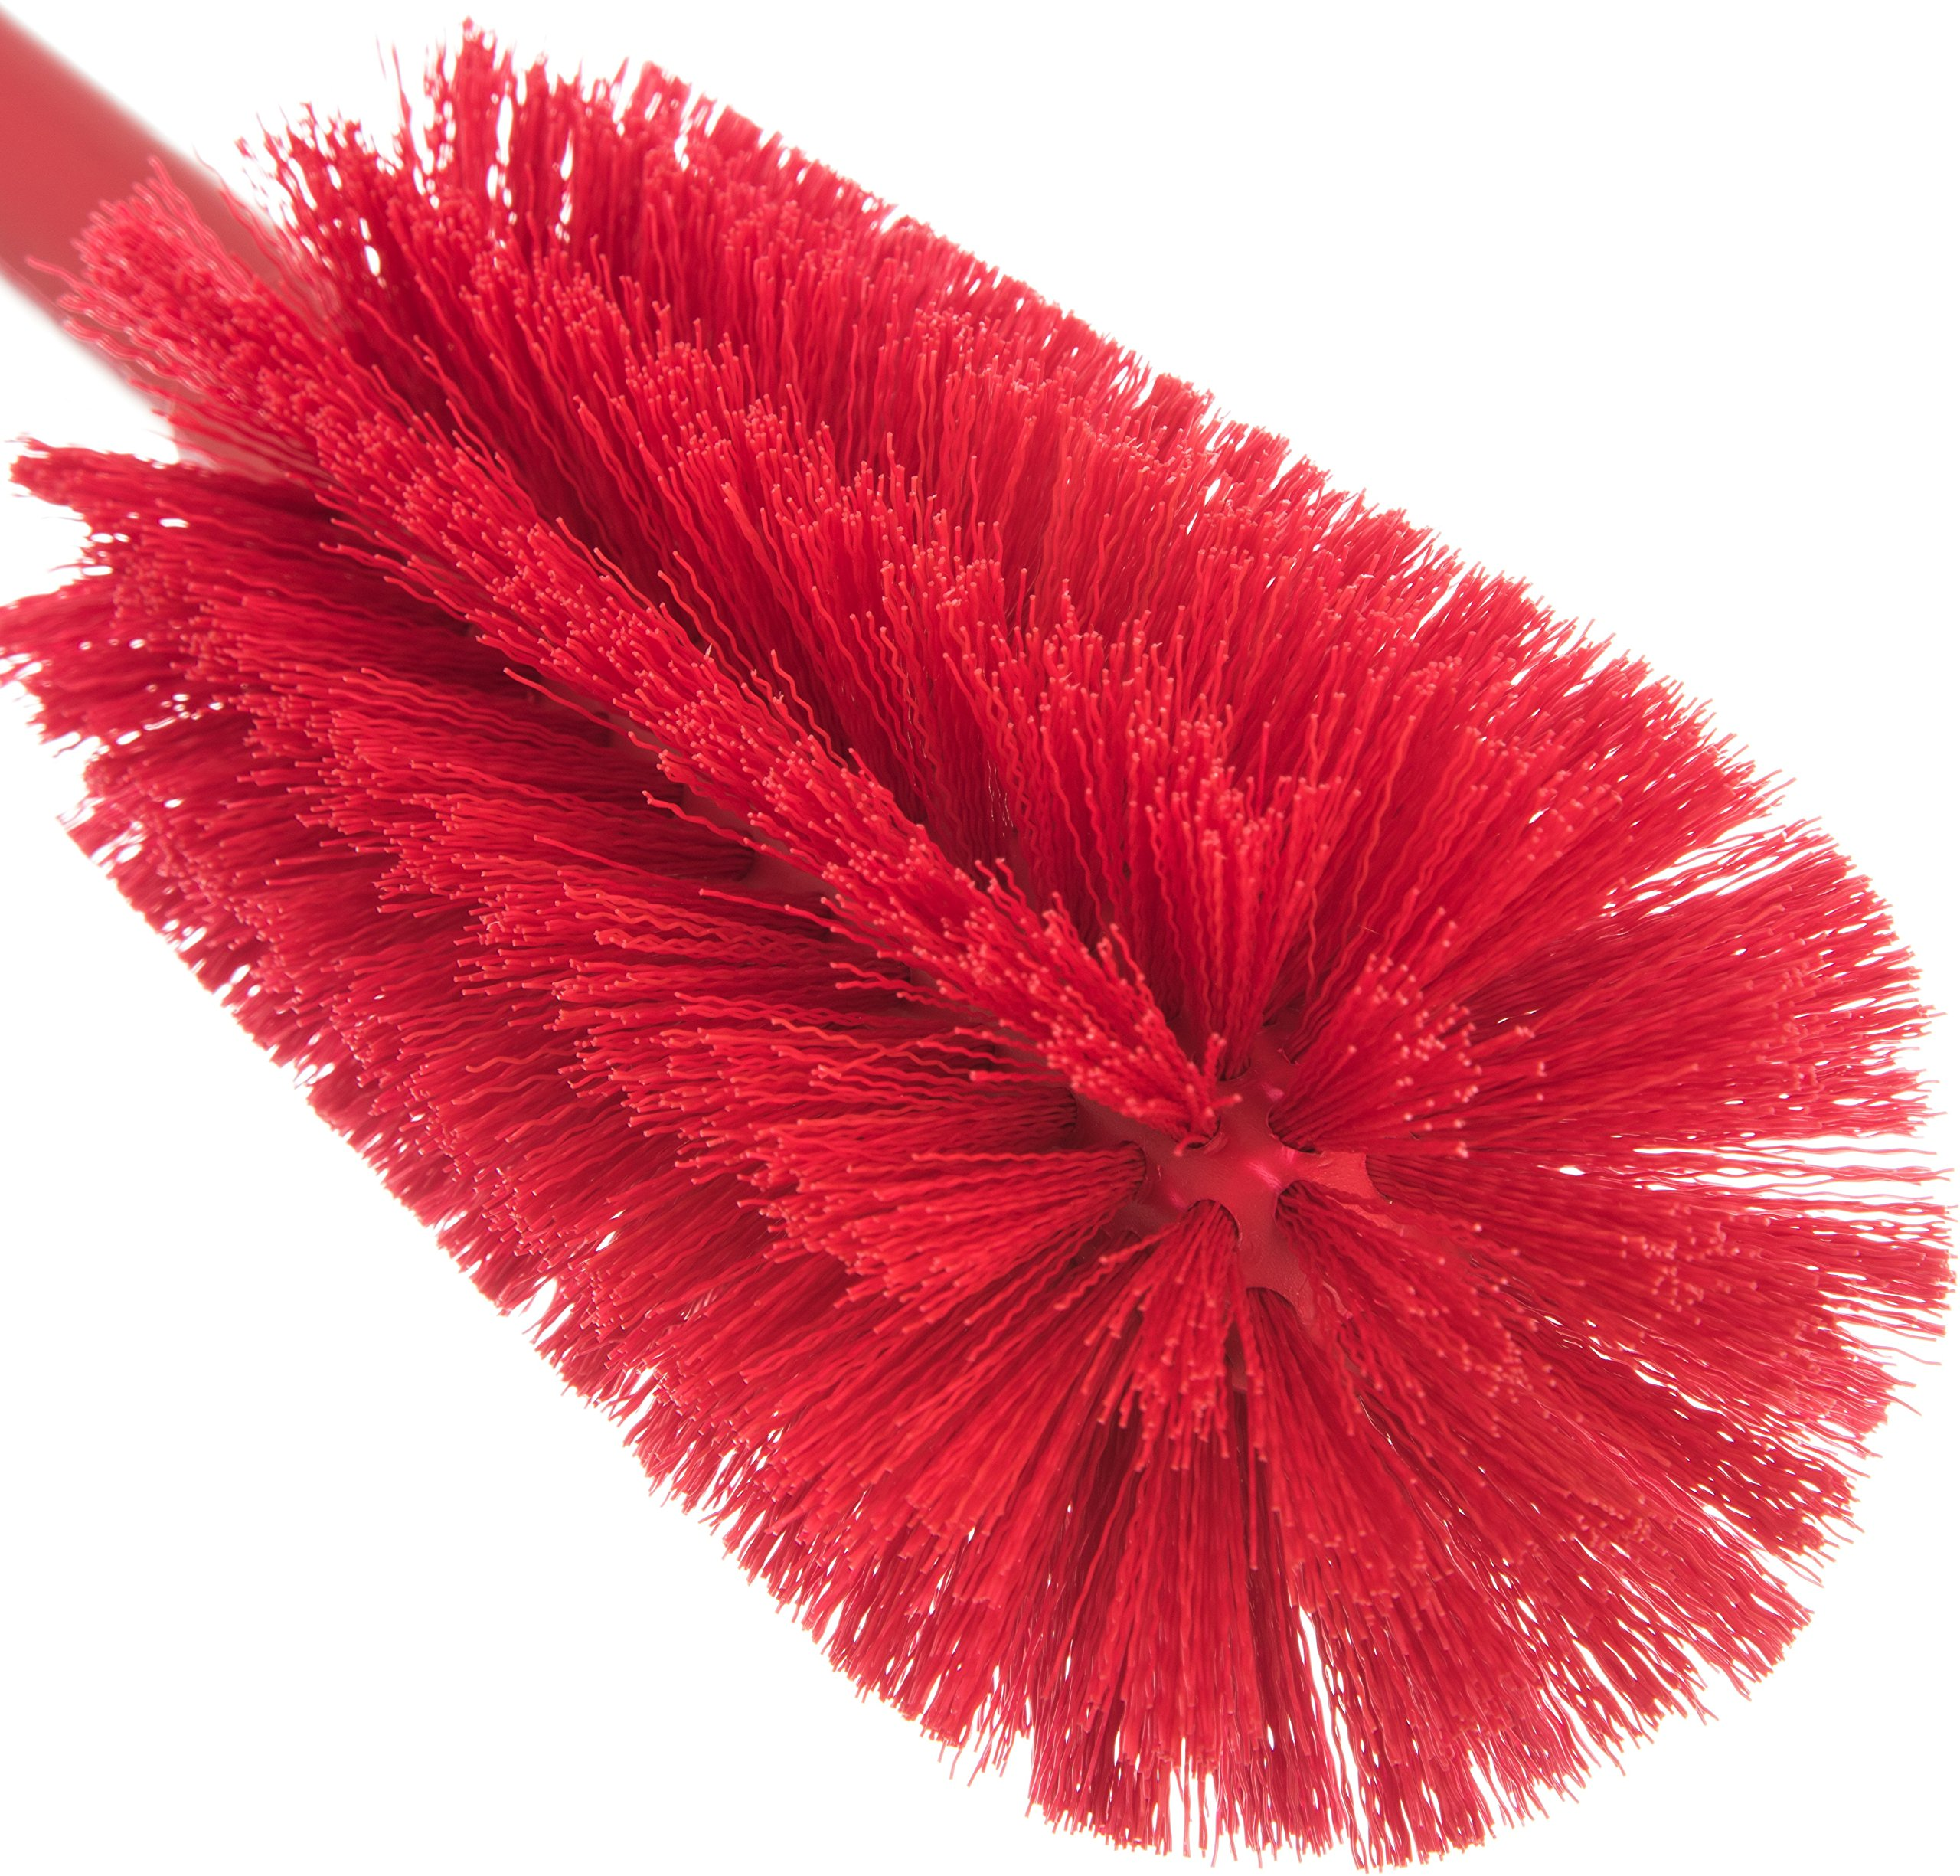 Carlisle 40001C05 Commercial Bottle Brush, Polyester Bristles, 16'' Length, Red (Pack of 6) by Carlisle (Image #4)